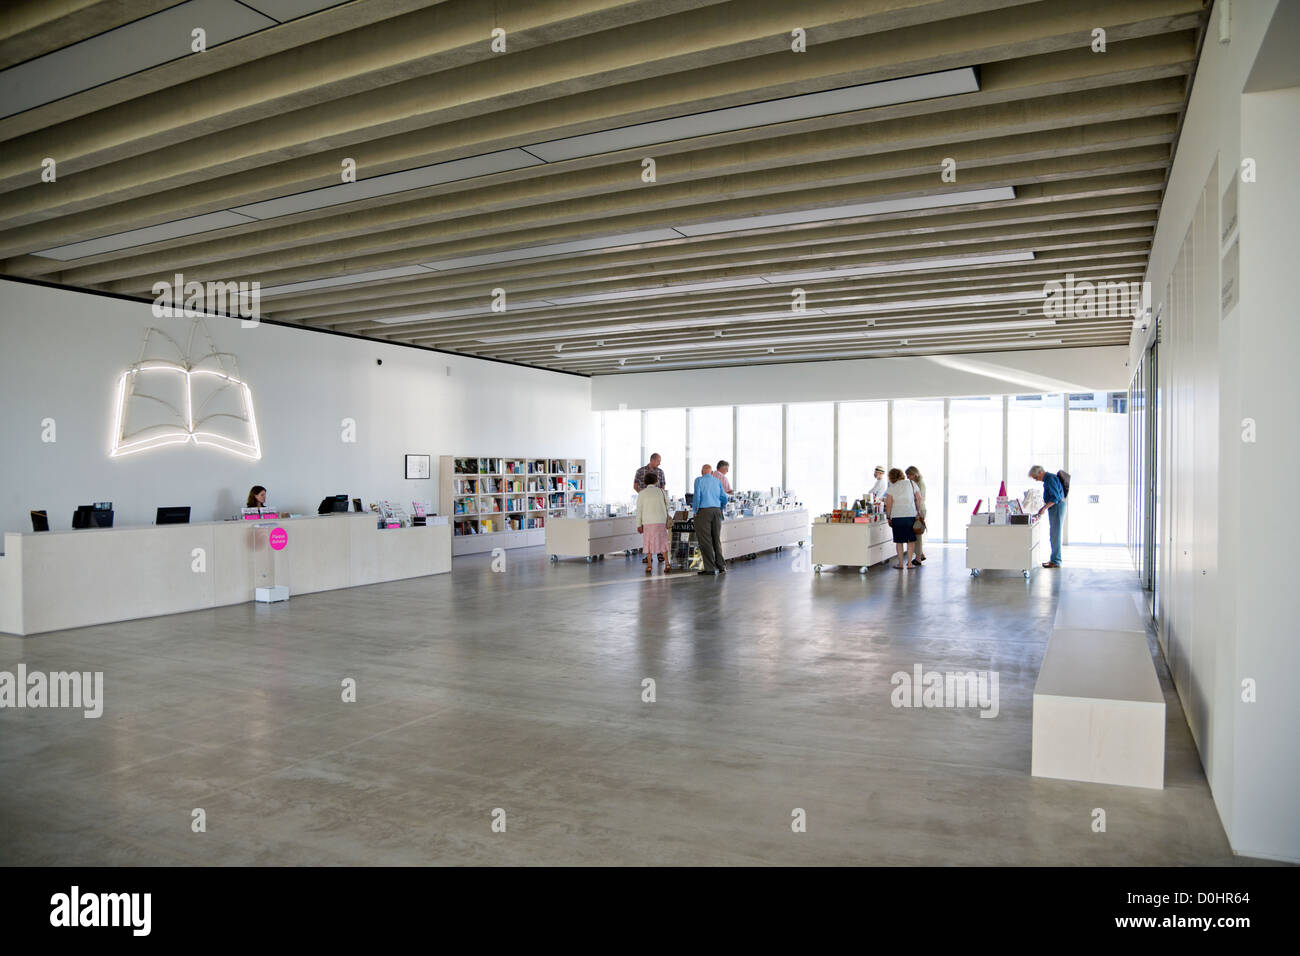 An interior view of the New Turner Gallery in Margate. Stock Photo